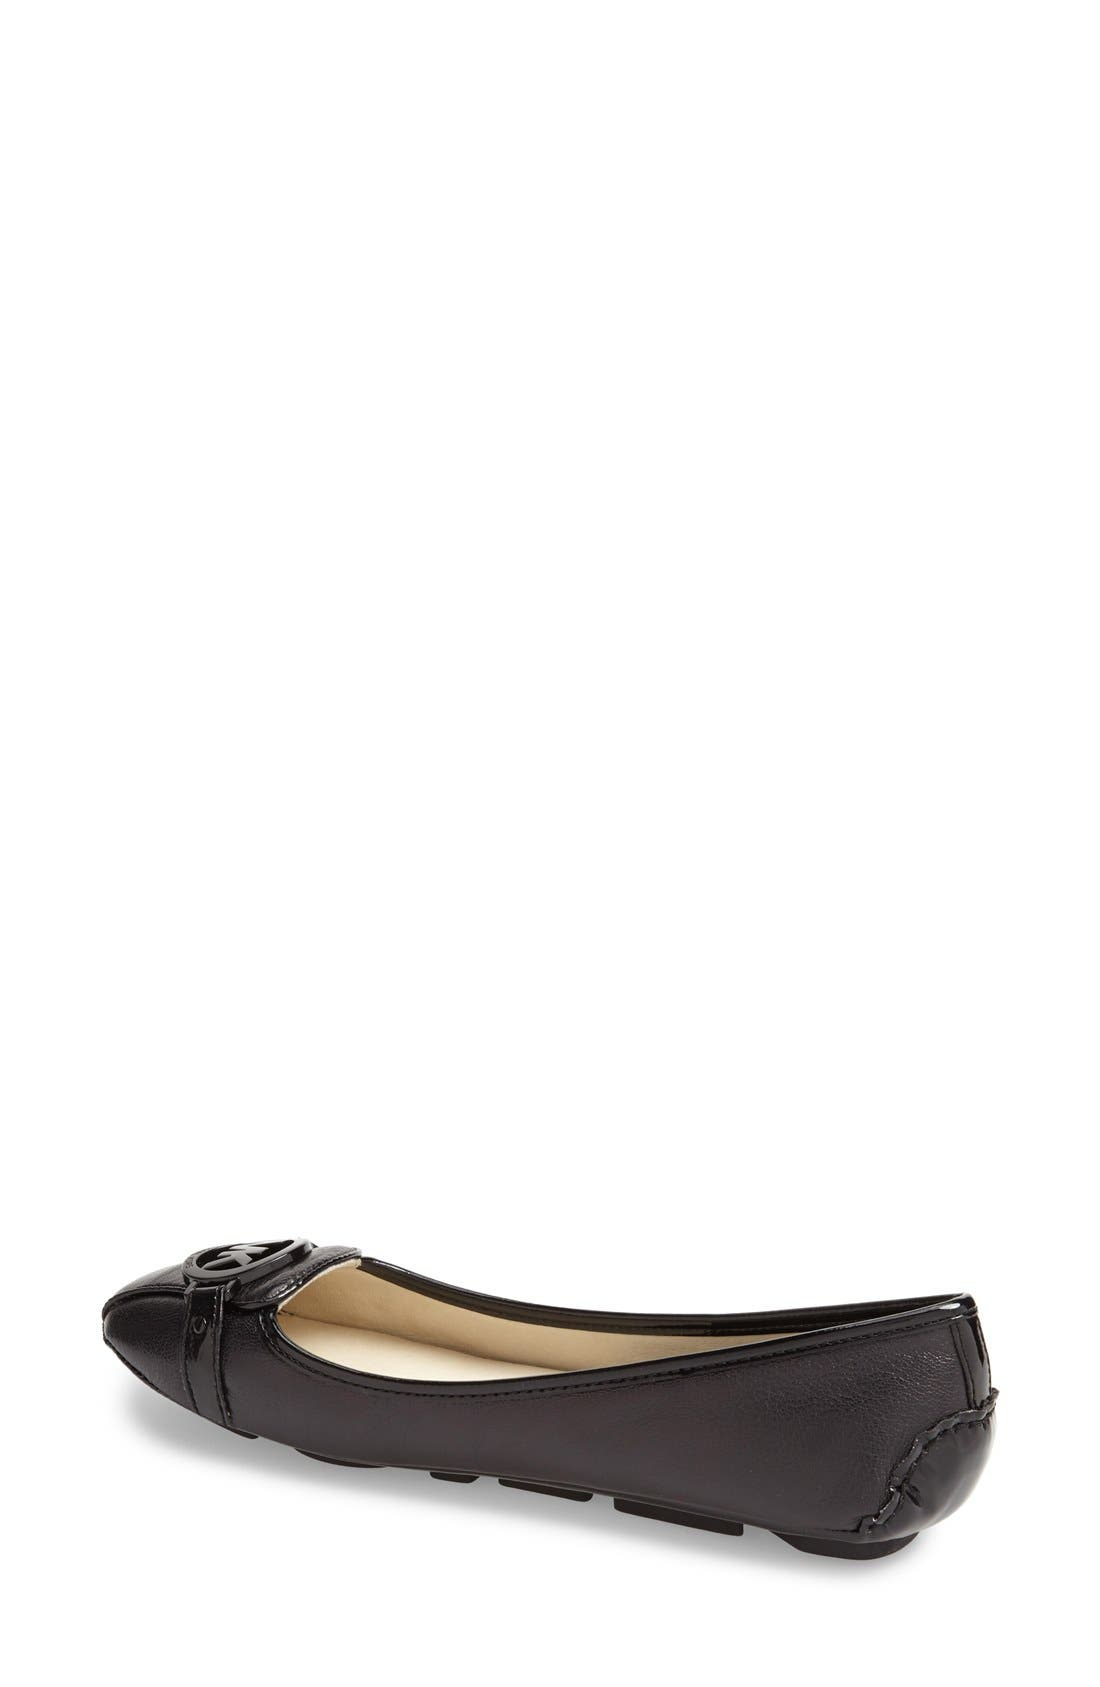 Alternate Image 5  - MICHAEL Michael Kors 'Fulton' Flat (Women)